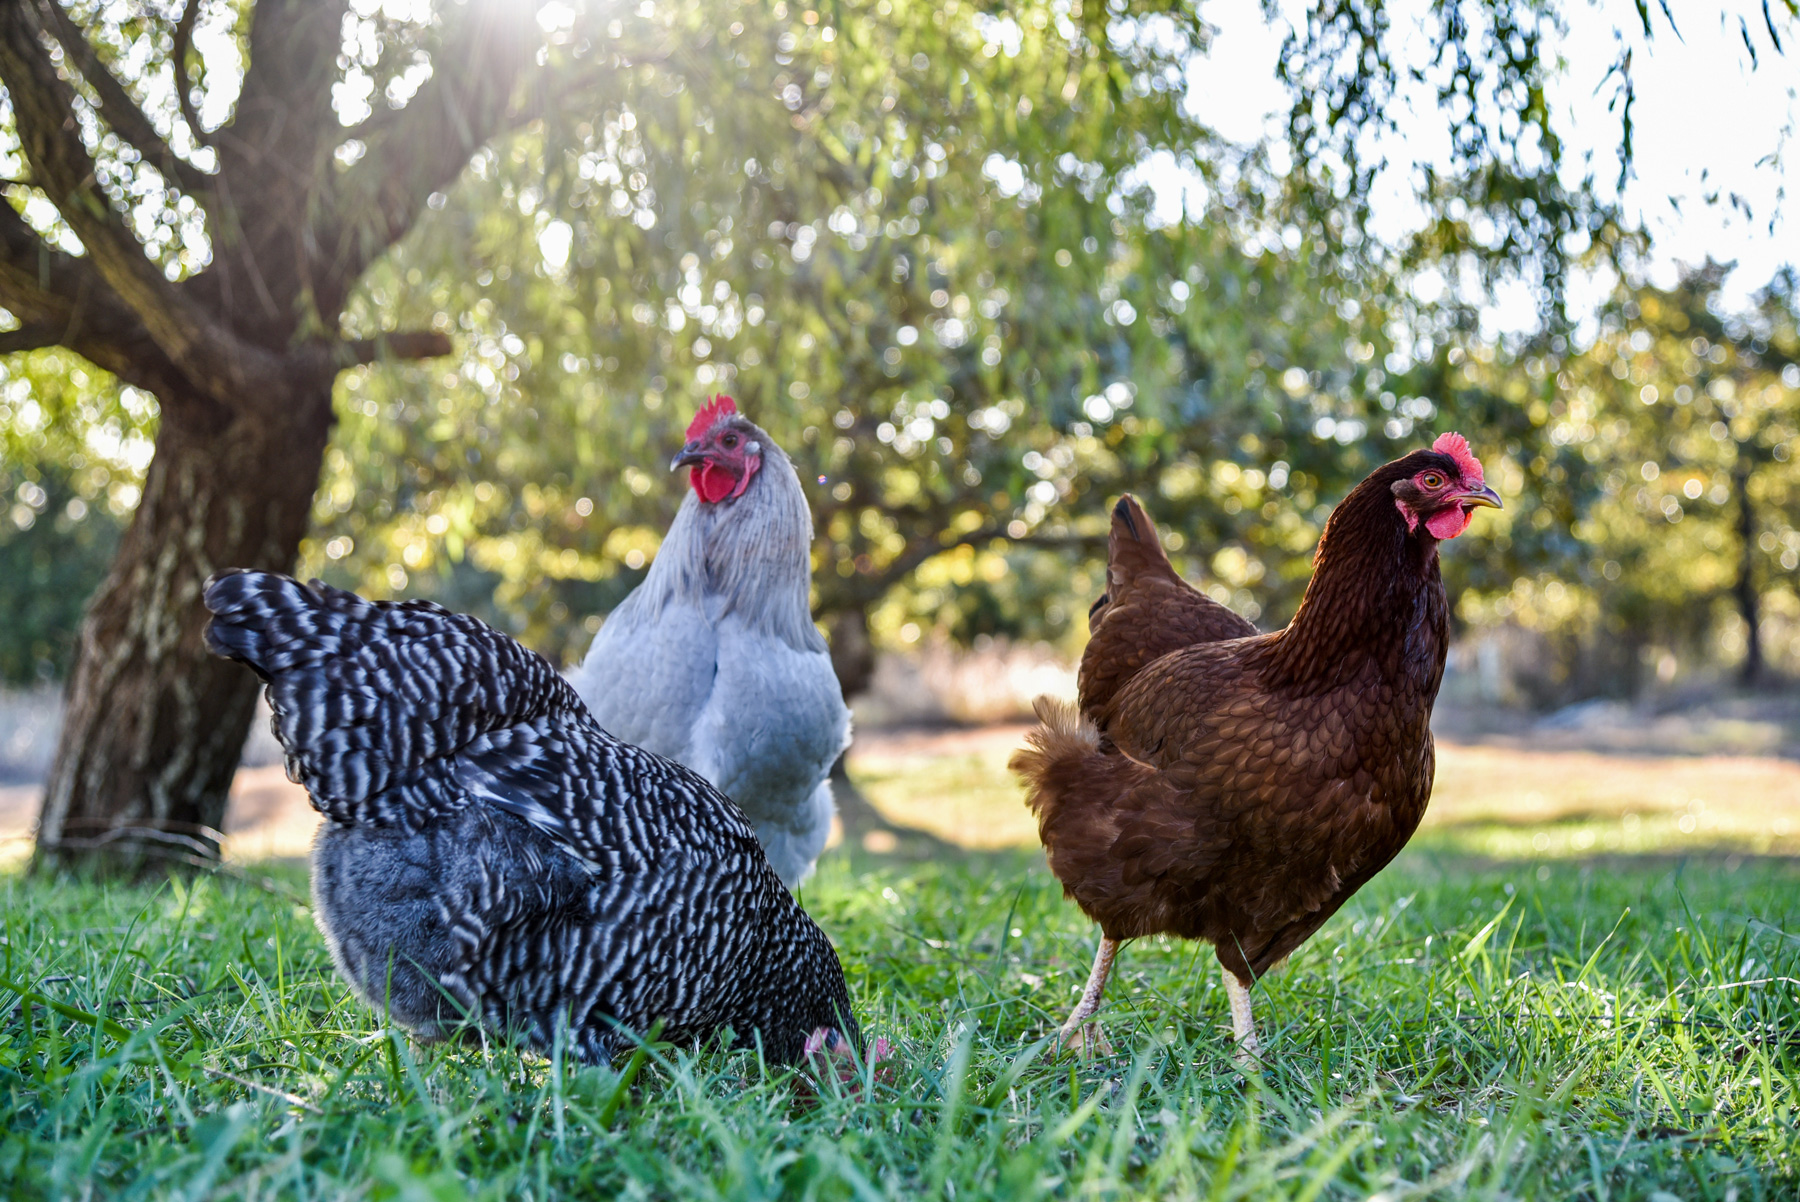 McMurrayHatchery Blog | Gail Damerow Discusses Prolapse and Egg Binding in Laying Hens